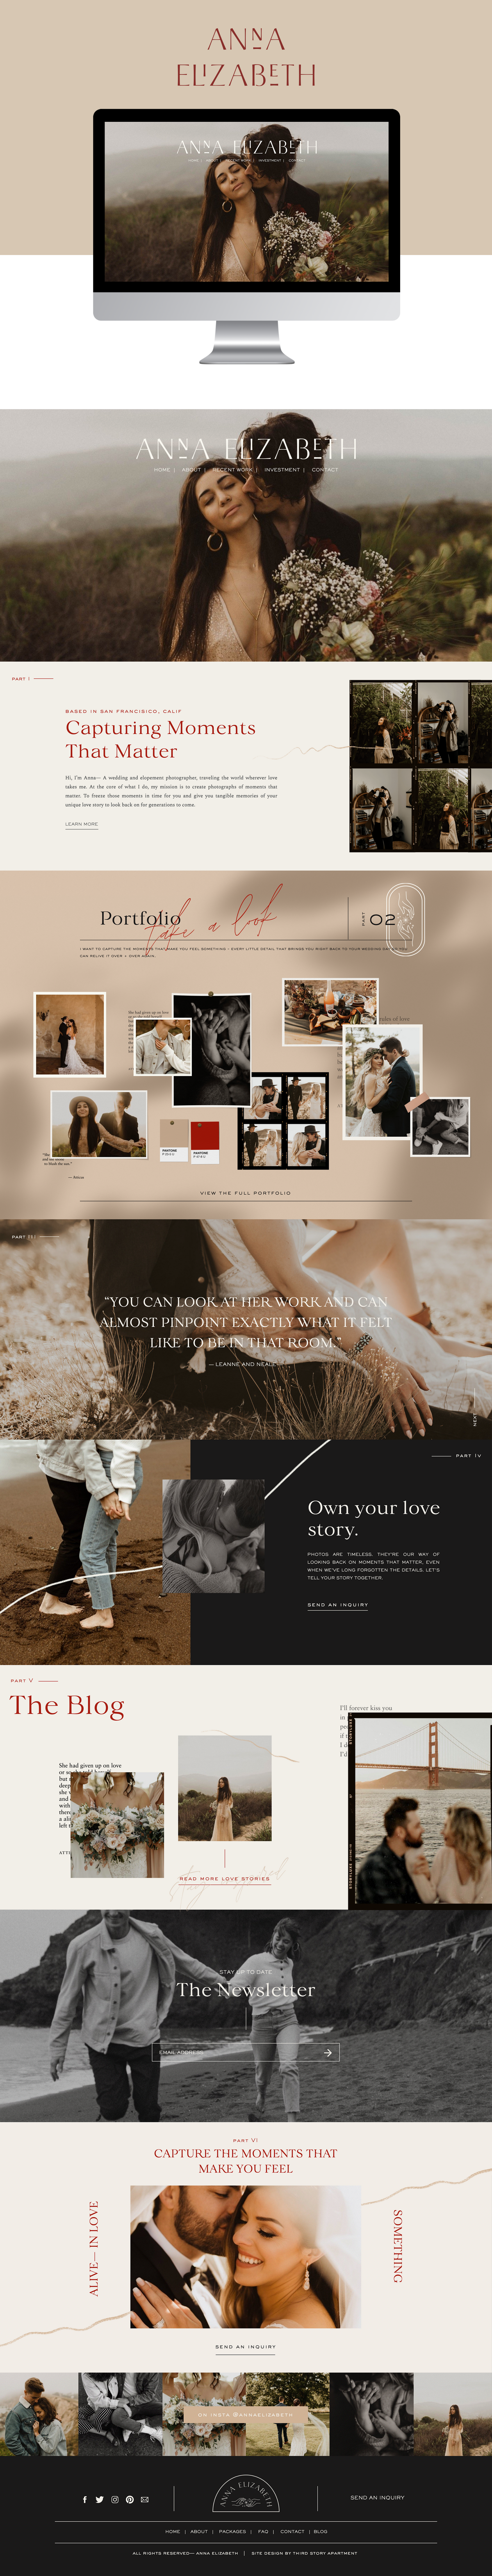 ThirdStory-Client-Desktop-And-Layout-AnnaElizabeth copy